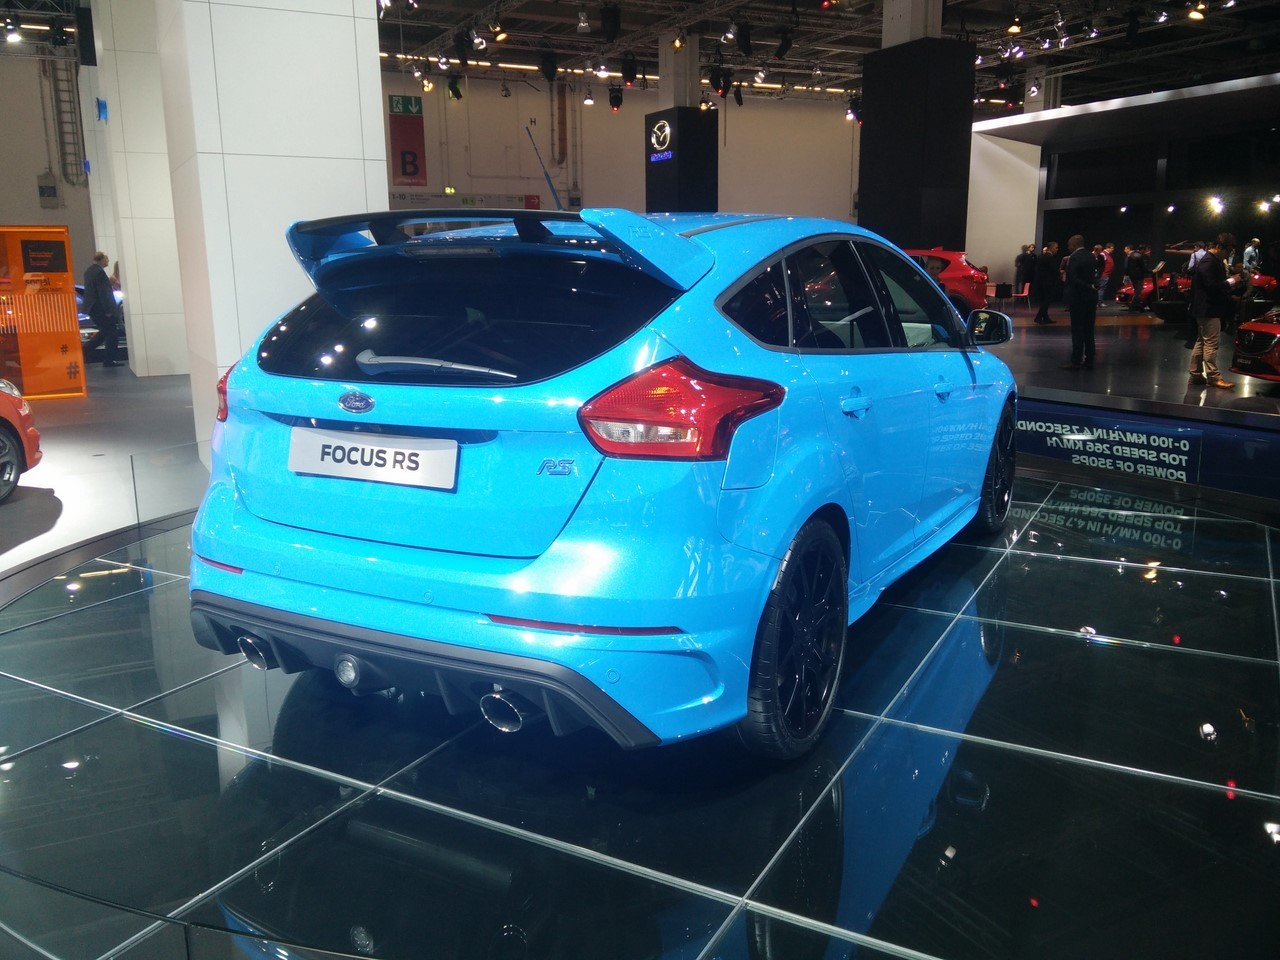 prix ford focus rs 2016 38 600 euros la nouvelle focus rs photo 4 l 39 argus. Black Bedroom Furniture Sets. Home Design Ideas